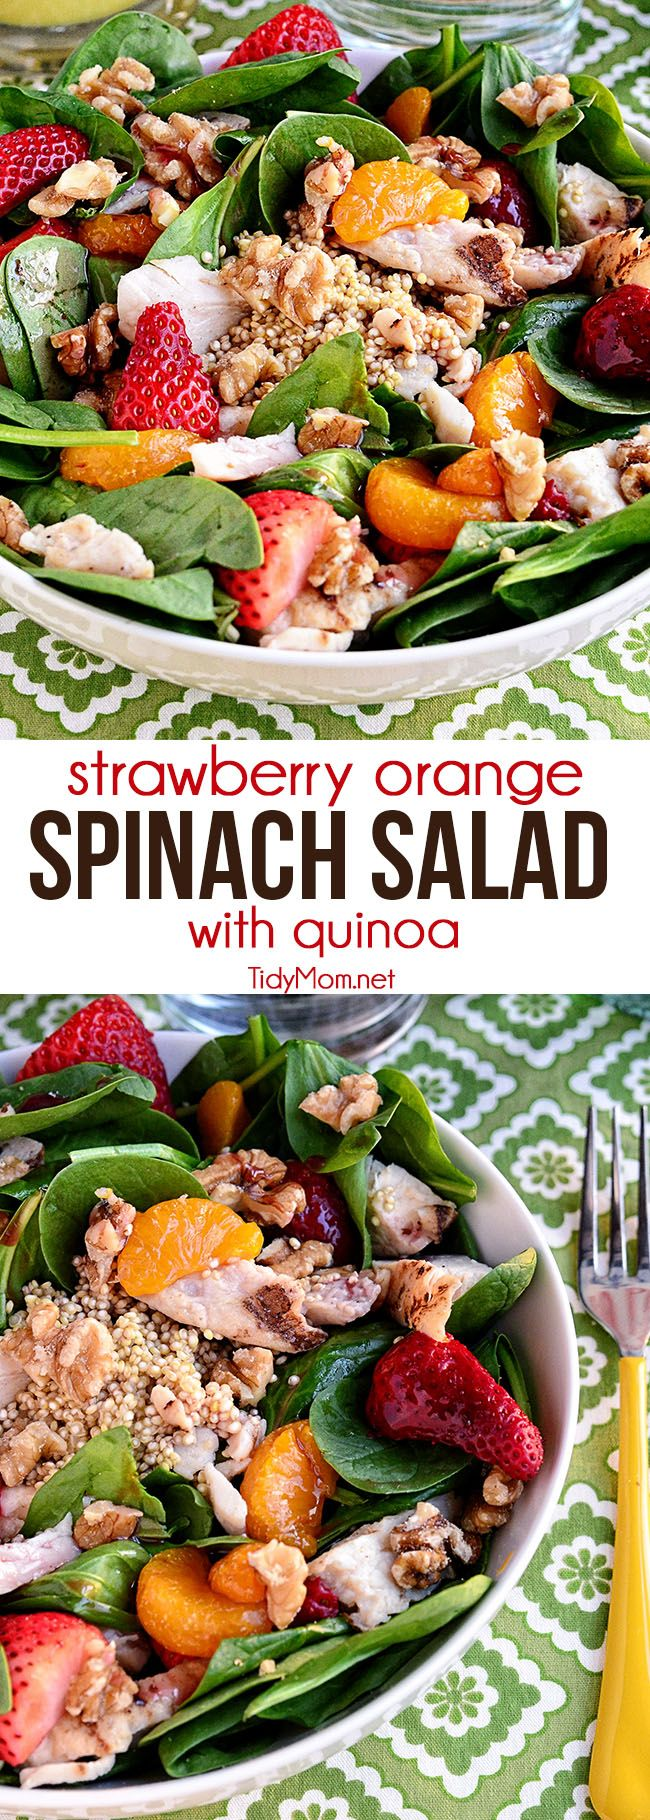 A hearty spring salad full of protein with warmed quinoa. Strawberry Orange Spinach Salad with Quinoa is perfect for lunch or dinner on warm spring days. Print full recipe at TidyMom.net